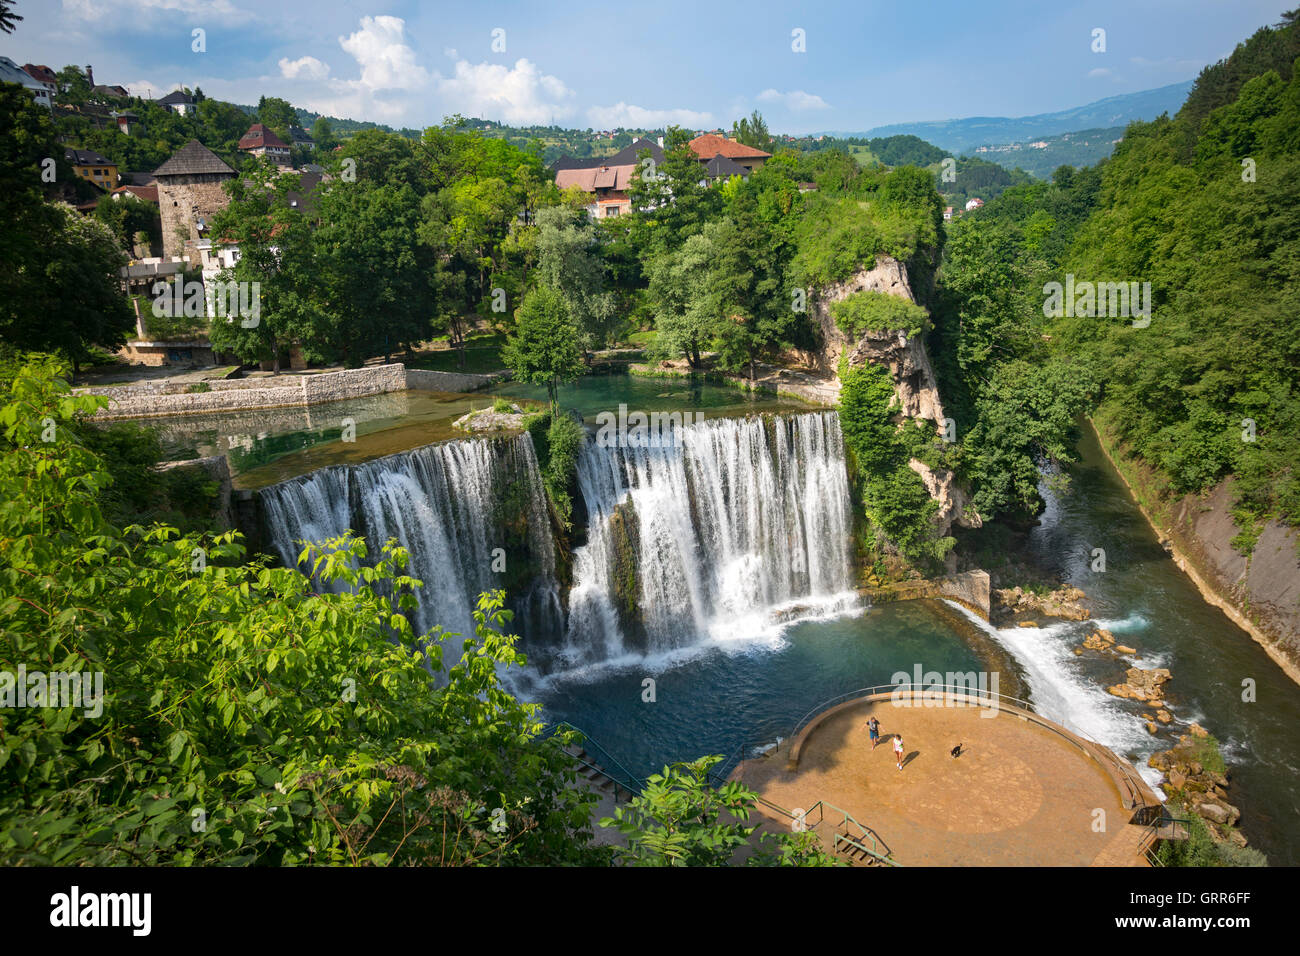 The beauty spot of the Jajce waterfall, at the confluence of the Pliva and Vrbas rivers (Bosnia - Herzegovina). - Stock Image